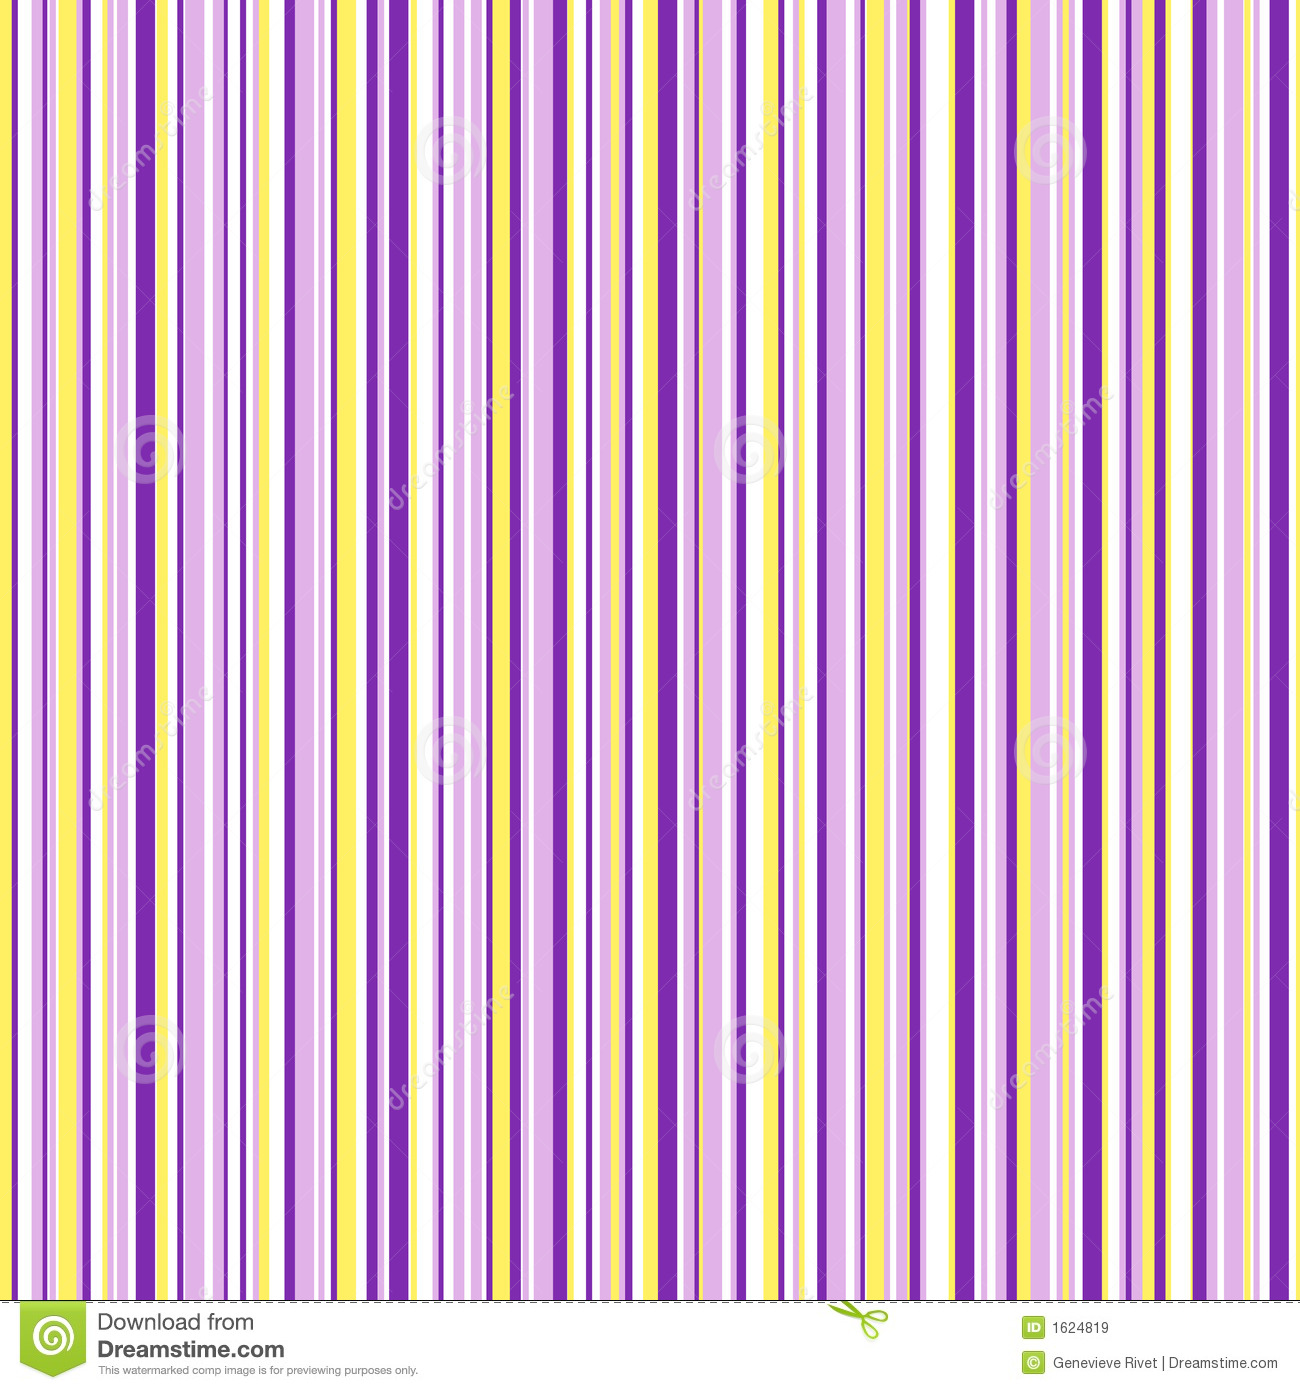 Pink And Purple Vertical Lined Paper Photo Image 1624820 – Vertical Lined Paper